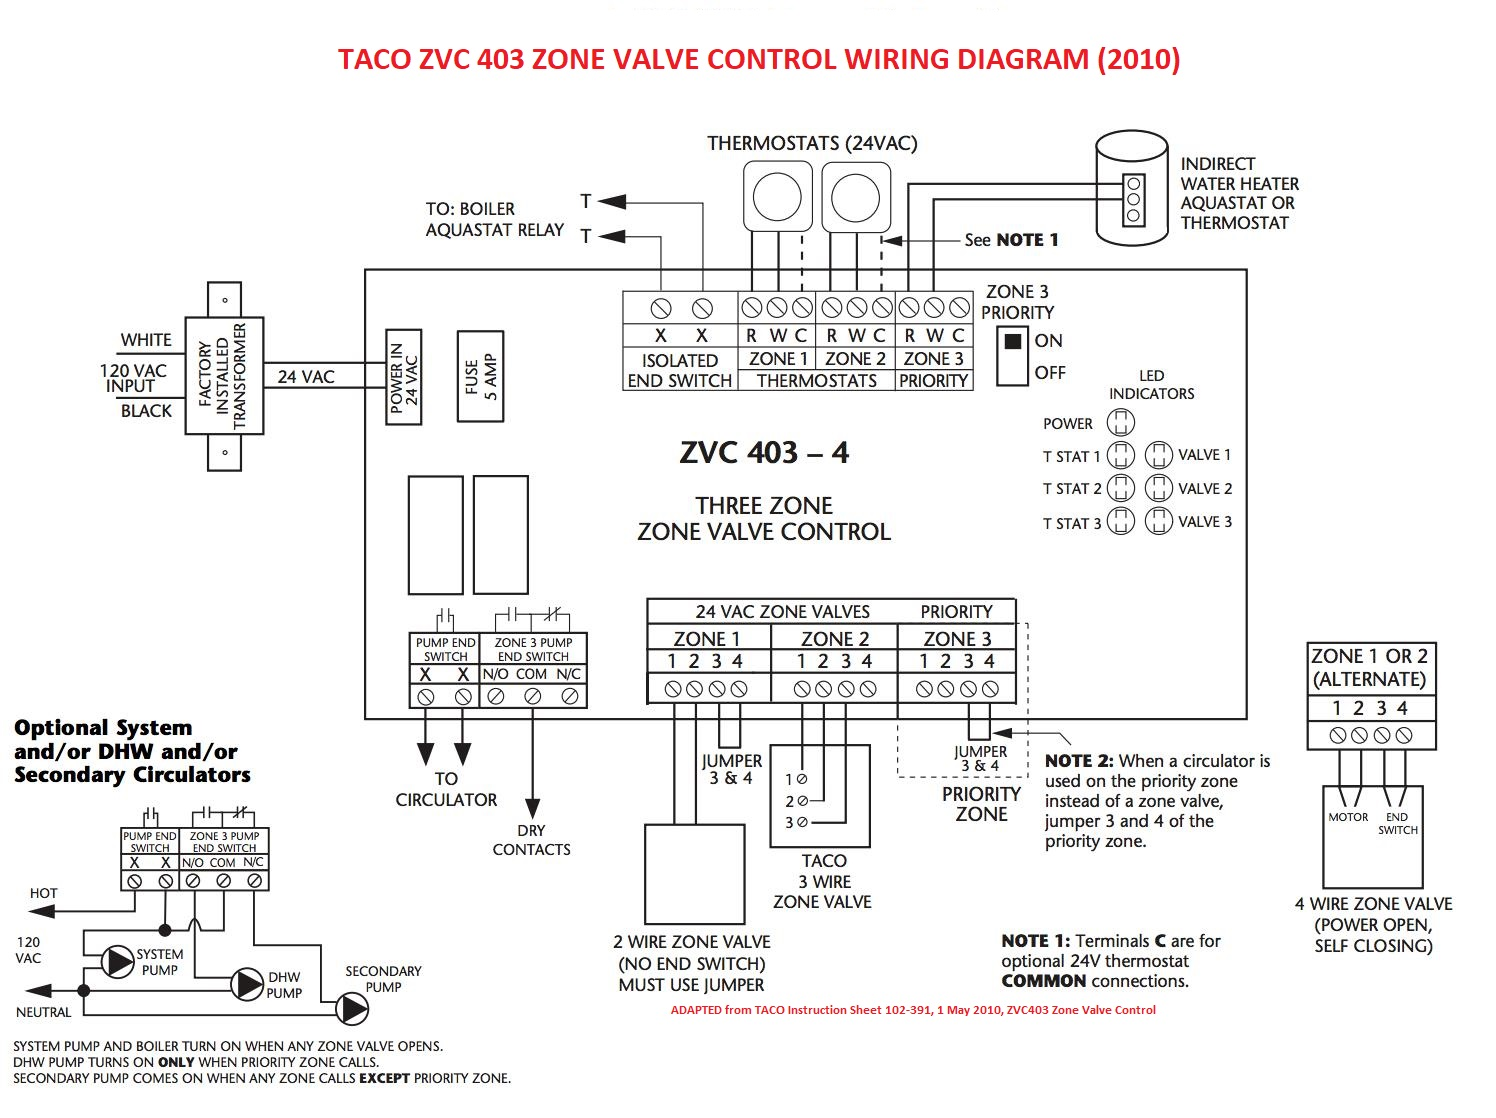 taci zvc493 wiring diagram - click to enlarge - at inspectapedia com  individual hydronic heating zone valve